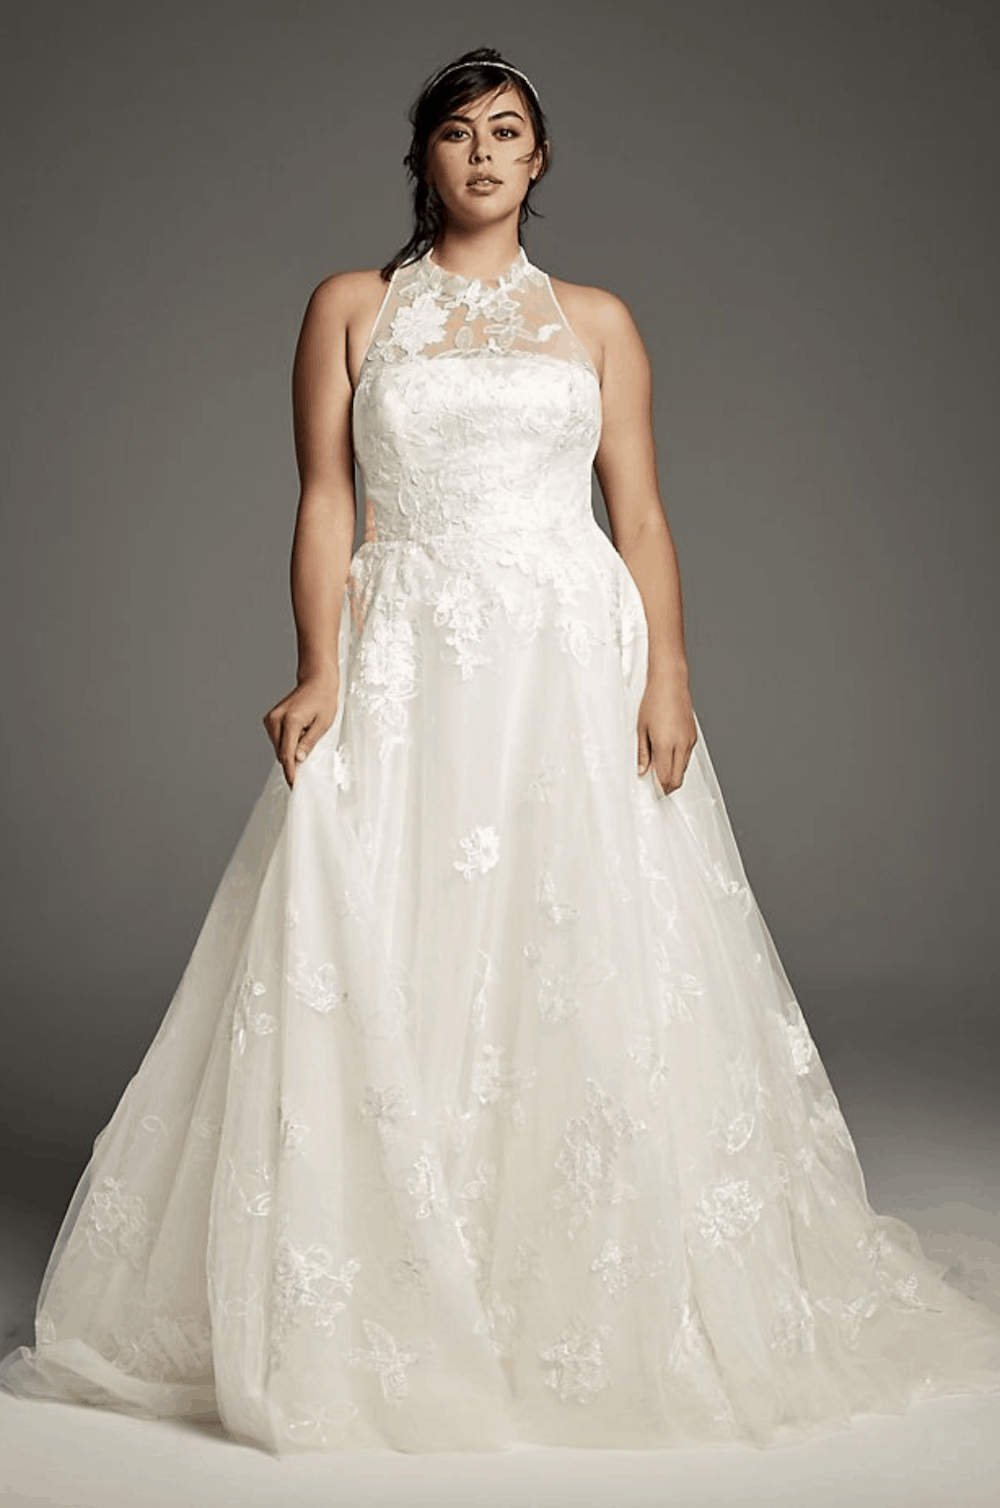 White by Vera Wang Floral Plus Size Wedding Dress Simple Plus Size Bridal Gowns